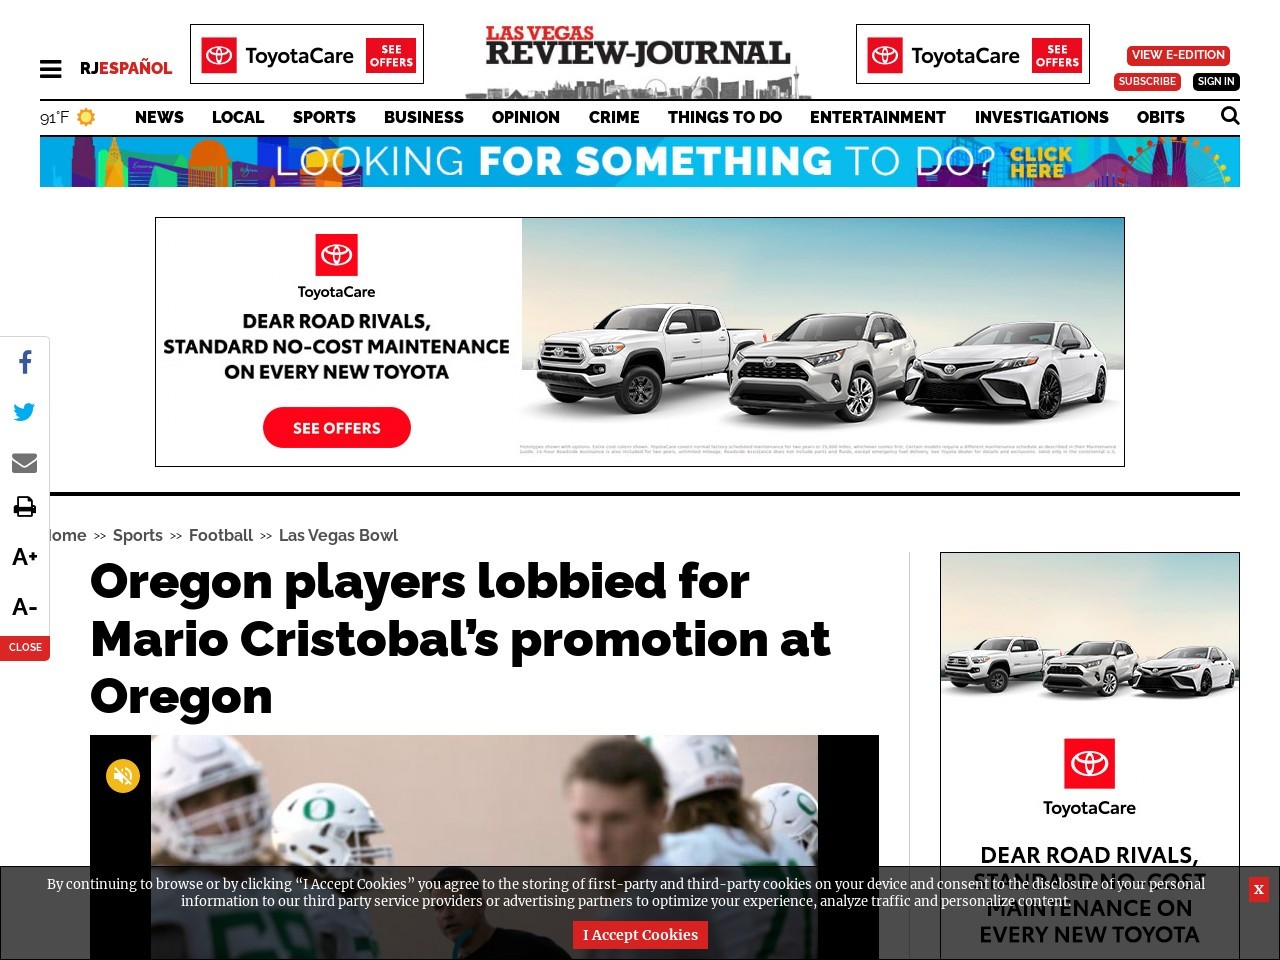 Oregon players lobbied for Mario Cristobal's promotion at Oregon